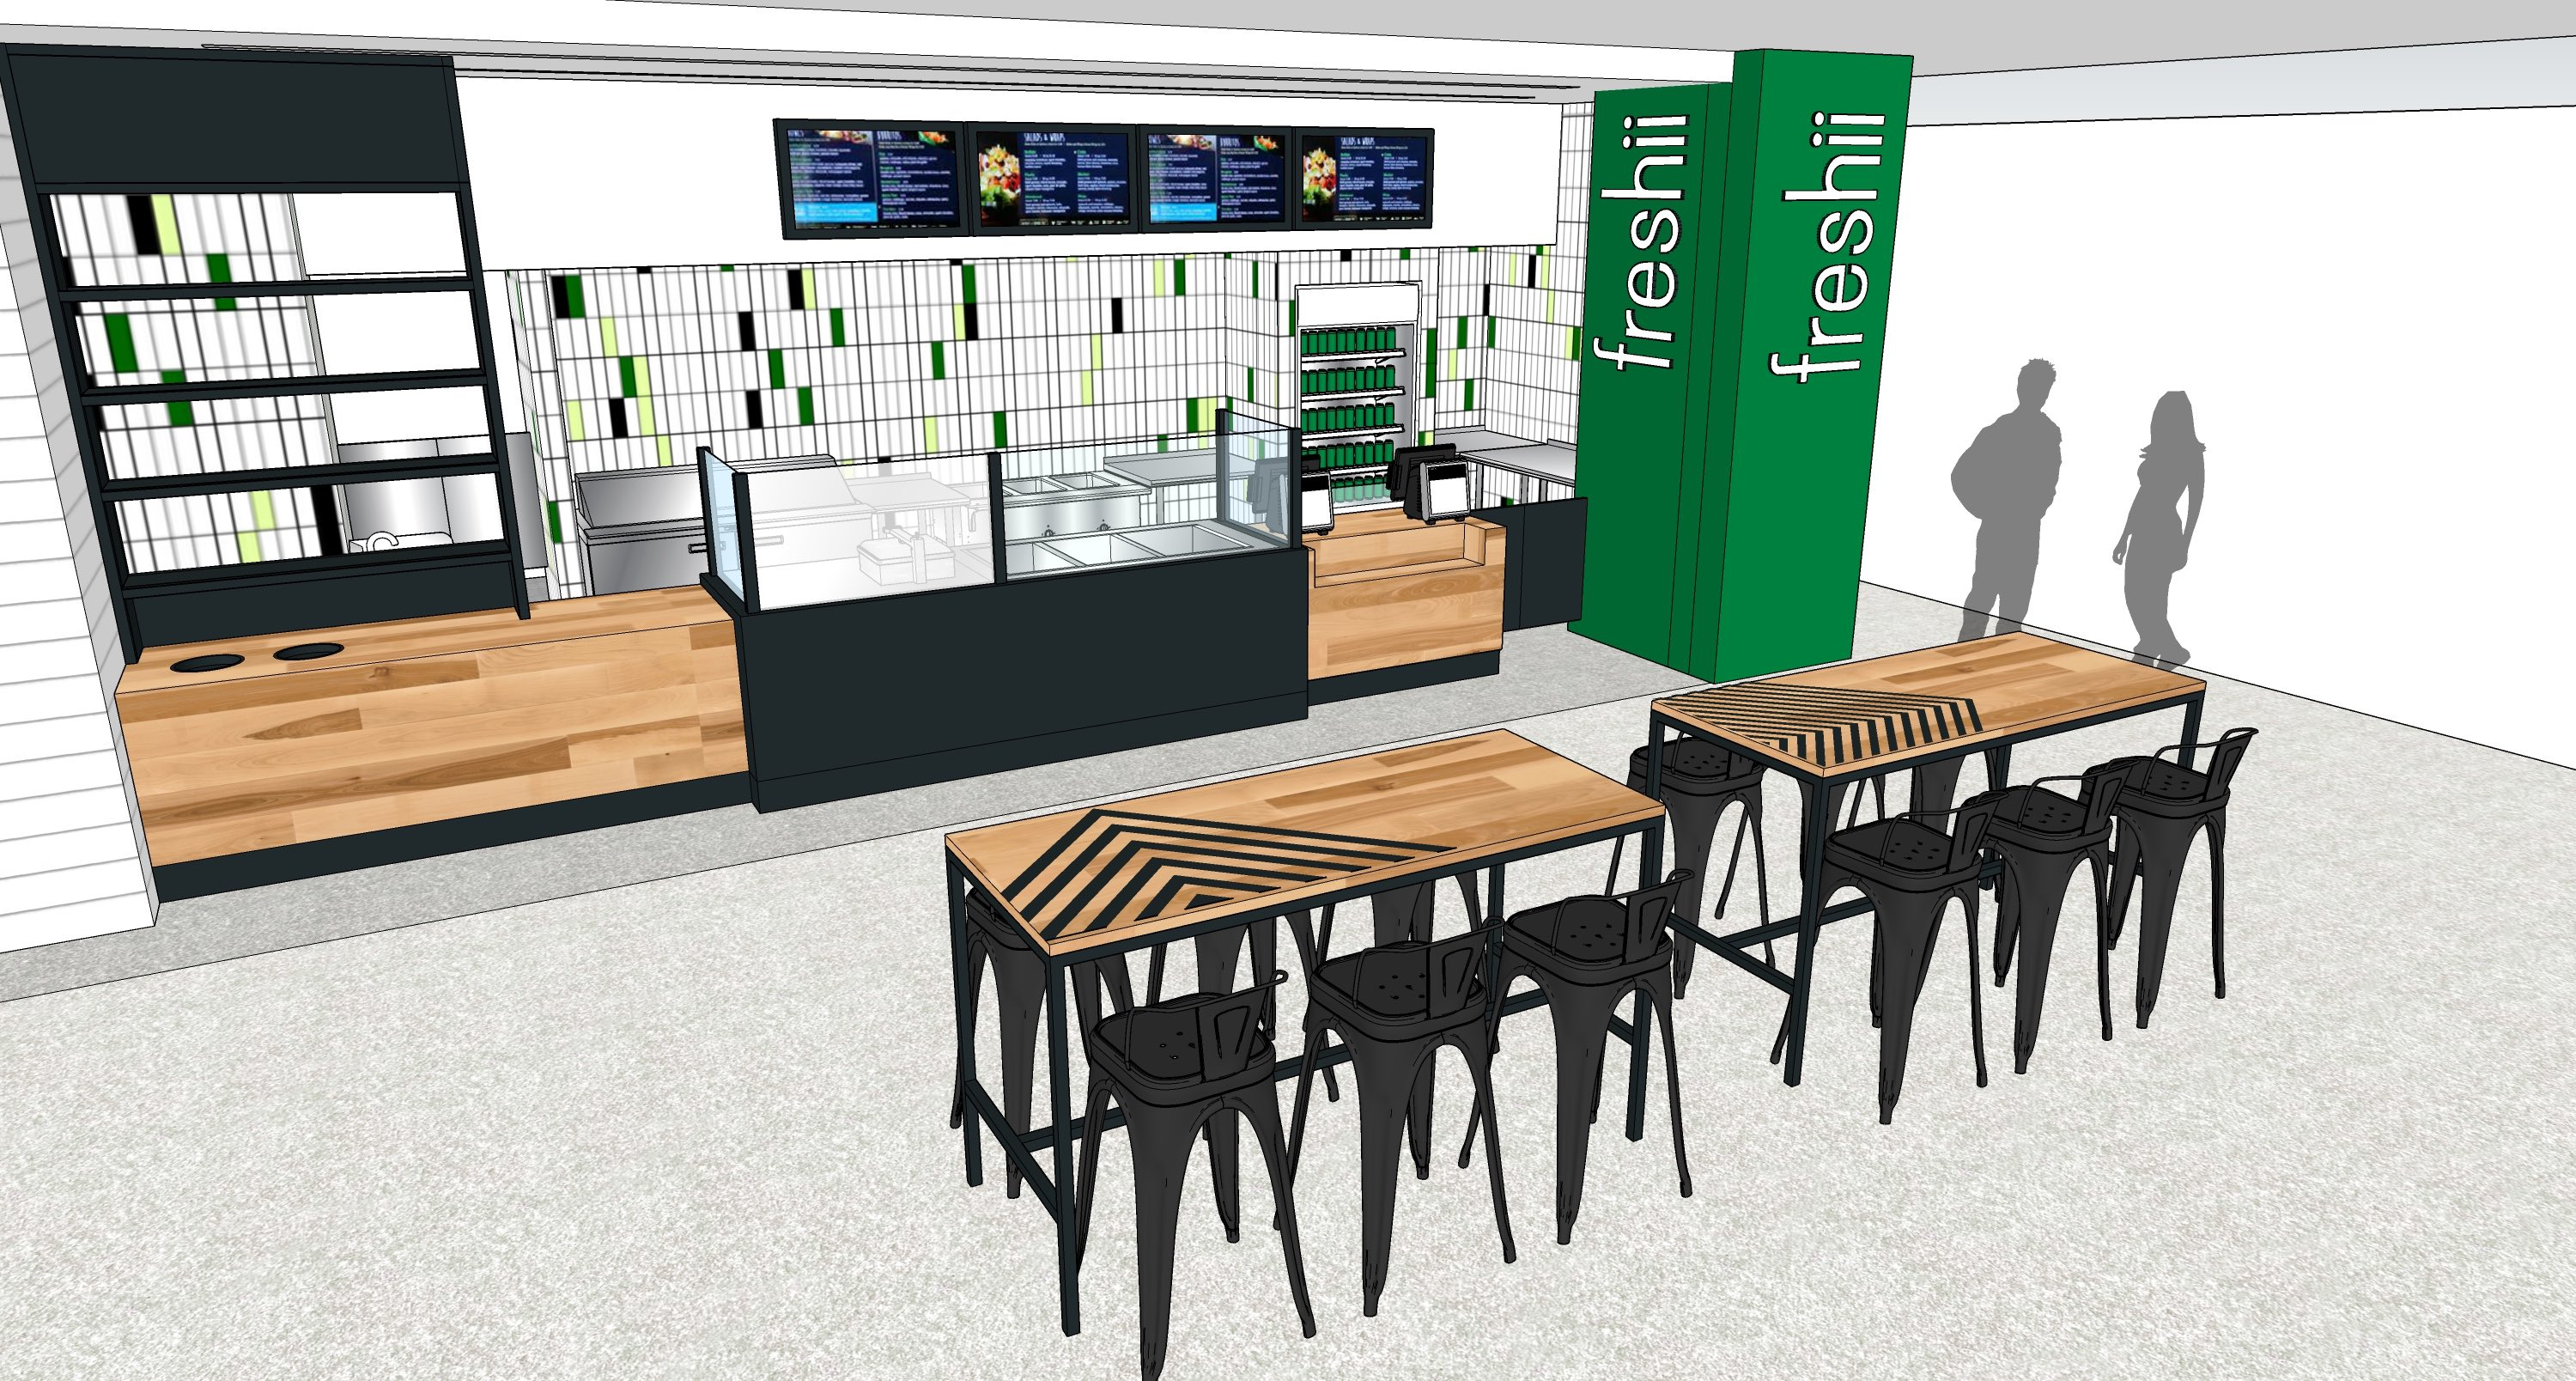 One of three recent announcements for the redeveloped Colony Square, Freshii is a fast-casual restaurant with globally inspired menu items.